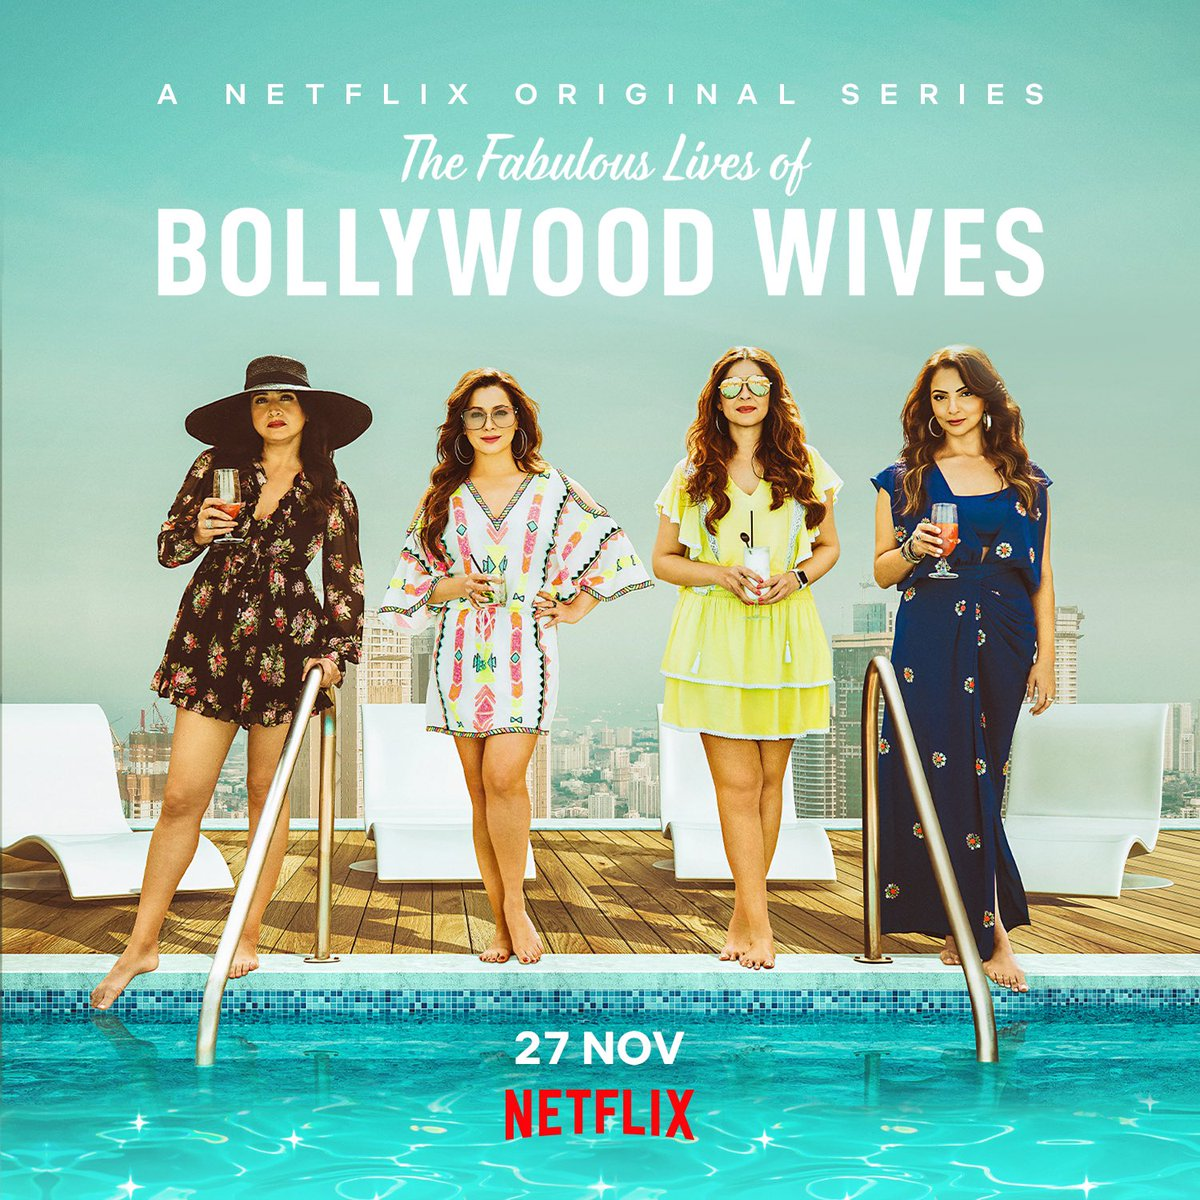 Make way for these four ladies and make room for some fabulous entertainment! #FabulousLives premieres tomorrow on #Netflix.  @maheepkapoor @neelamkothari @seemakkhan @BhavanaPandey @NetflixIndia @apoorvamehta18 @aneeshabaig @scrappypants #UttamDomale